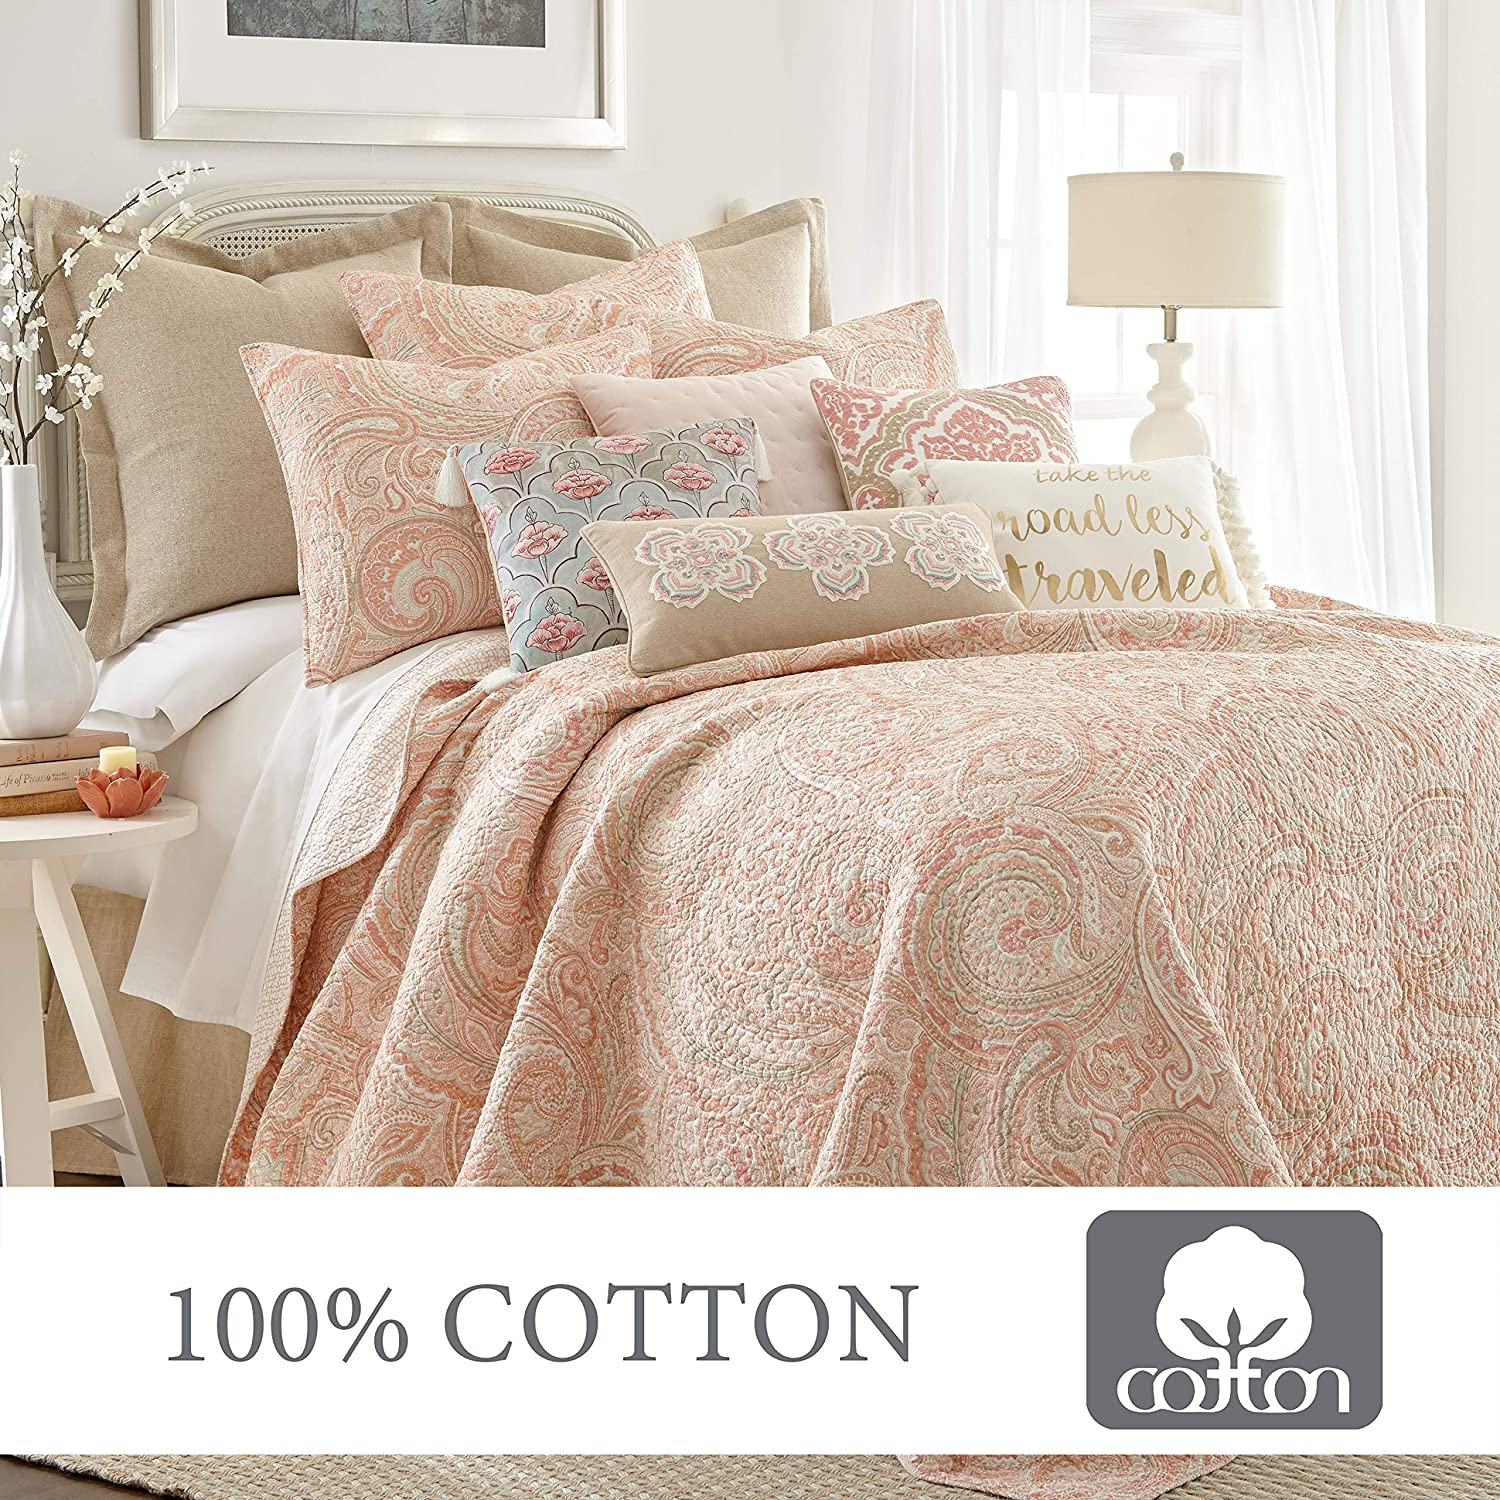 Levtex Home Spruce Coral Quilt Set King Quilt Two King Pillow Shams Paisley Pattern In Coral And Tan Quilt Size 106 X 92 And Pillow Sham Size 36